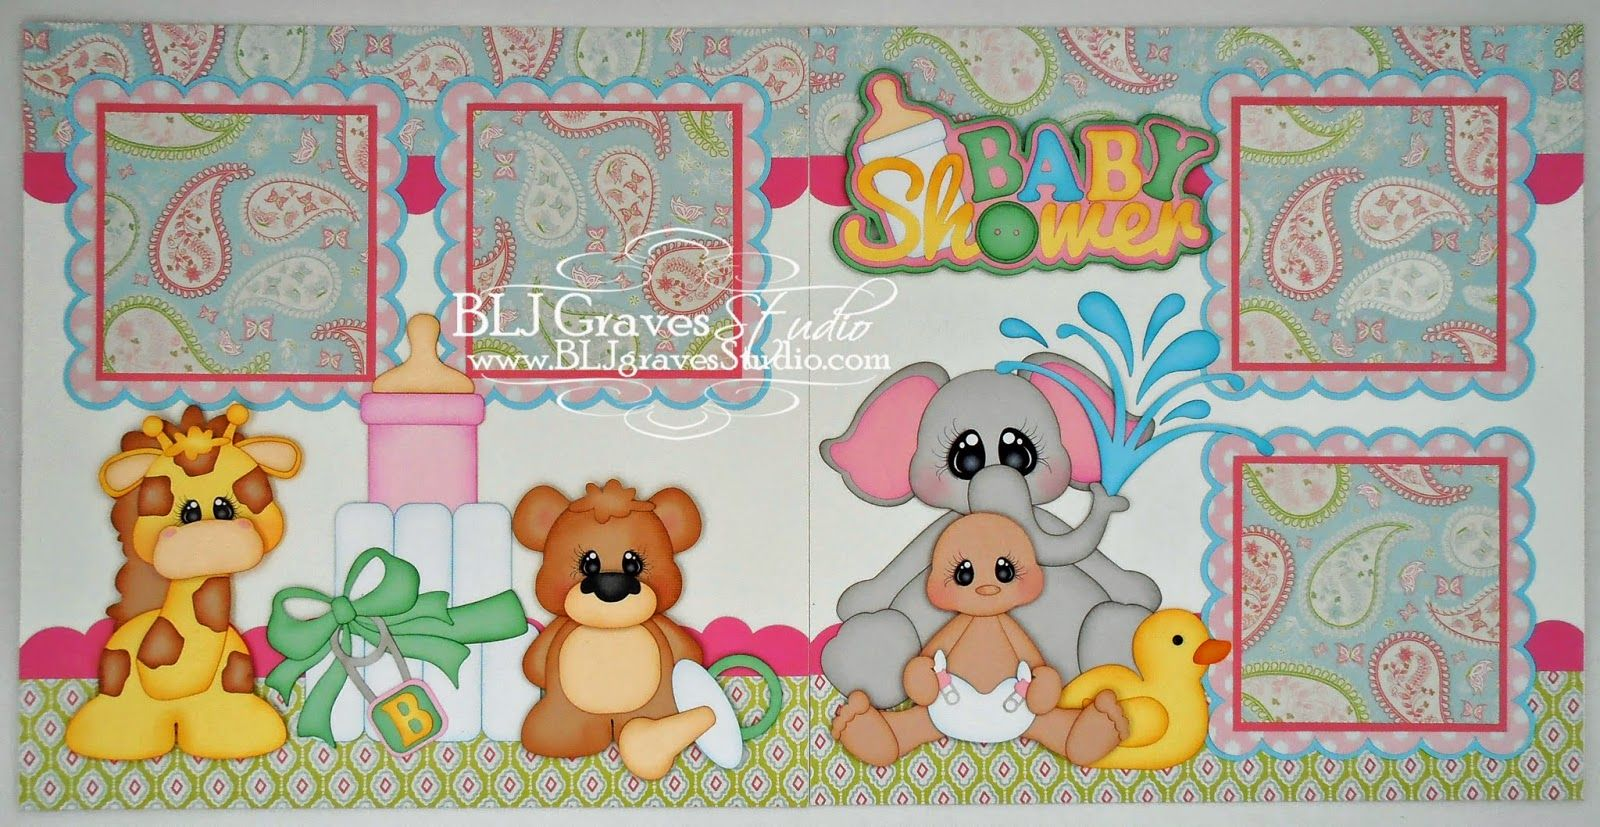 Baby Shower Scrapbook Pages Part - 16: BLJ Graves Studio: Baby Shower Scrapbook Pages